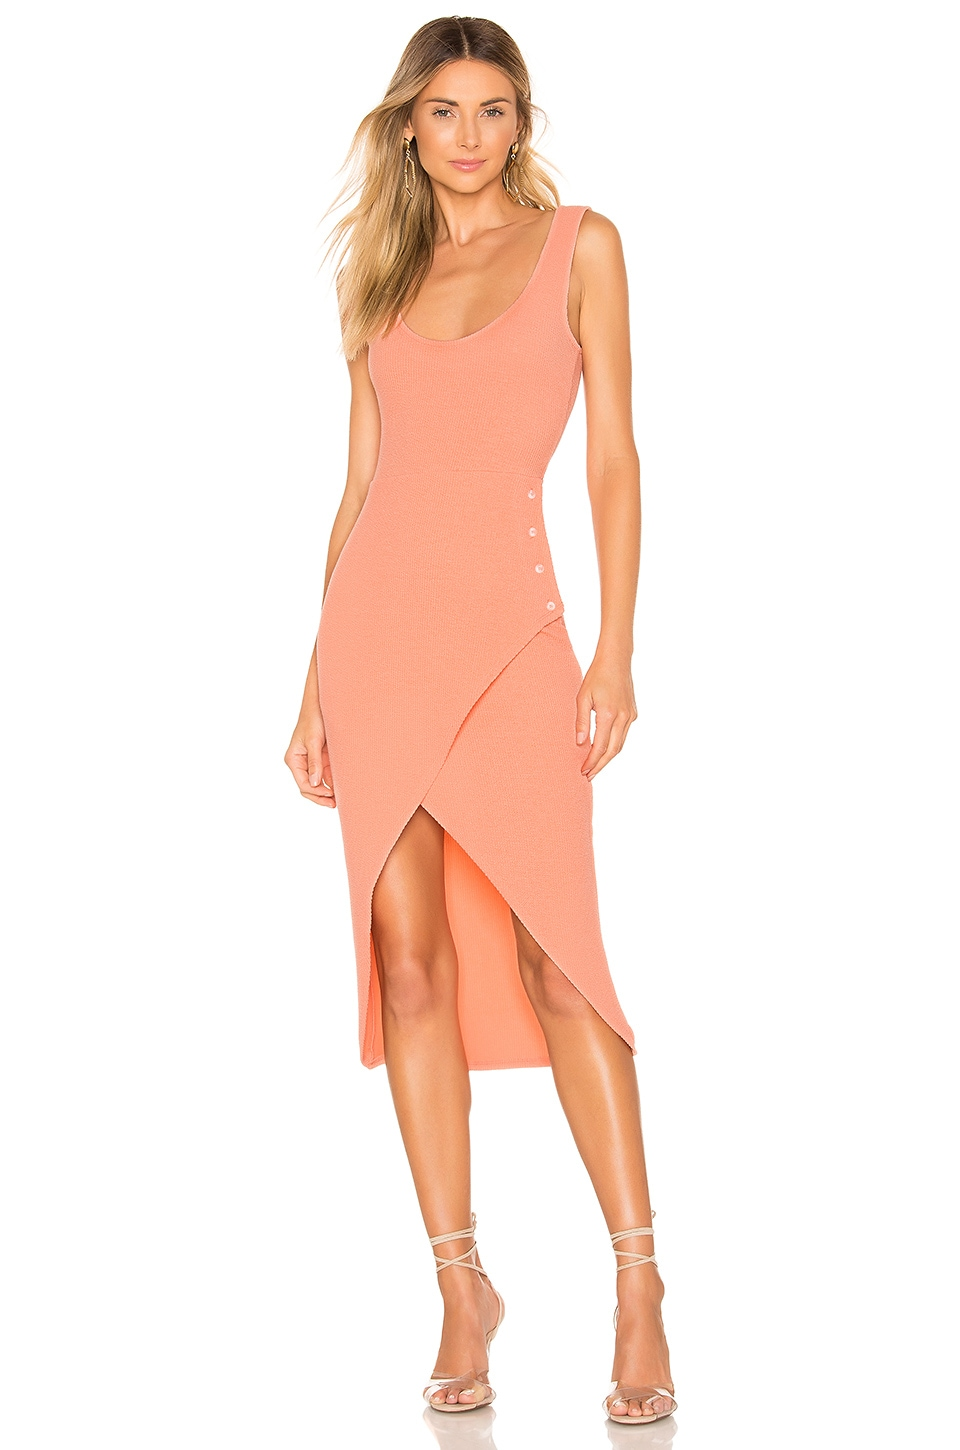 Lovers + Friends Macpherson Midi Dress in Peach